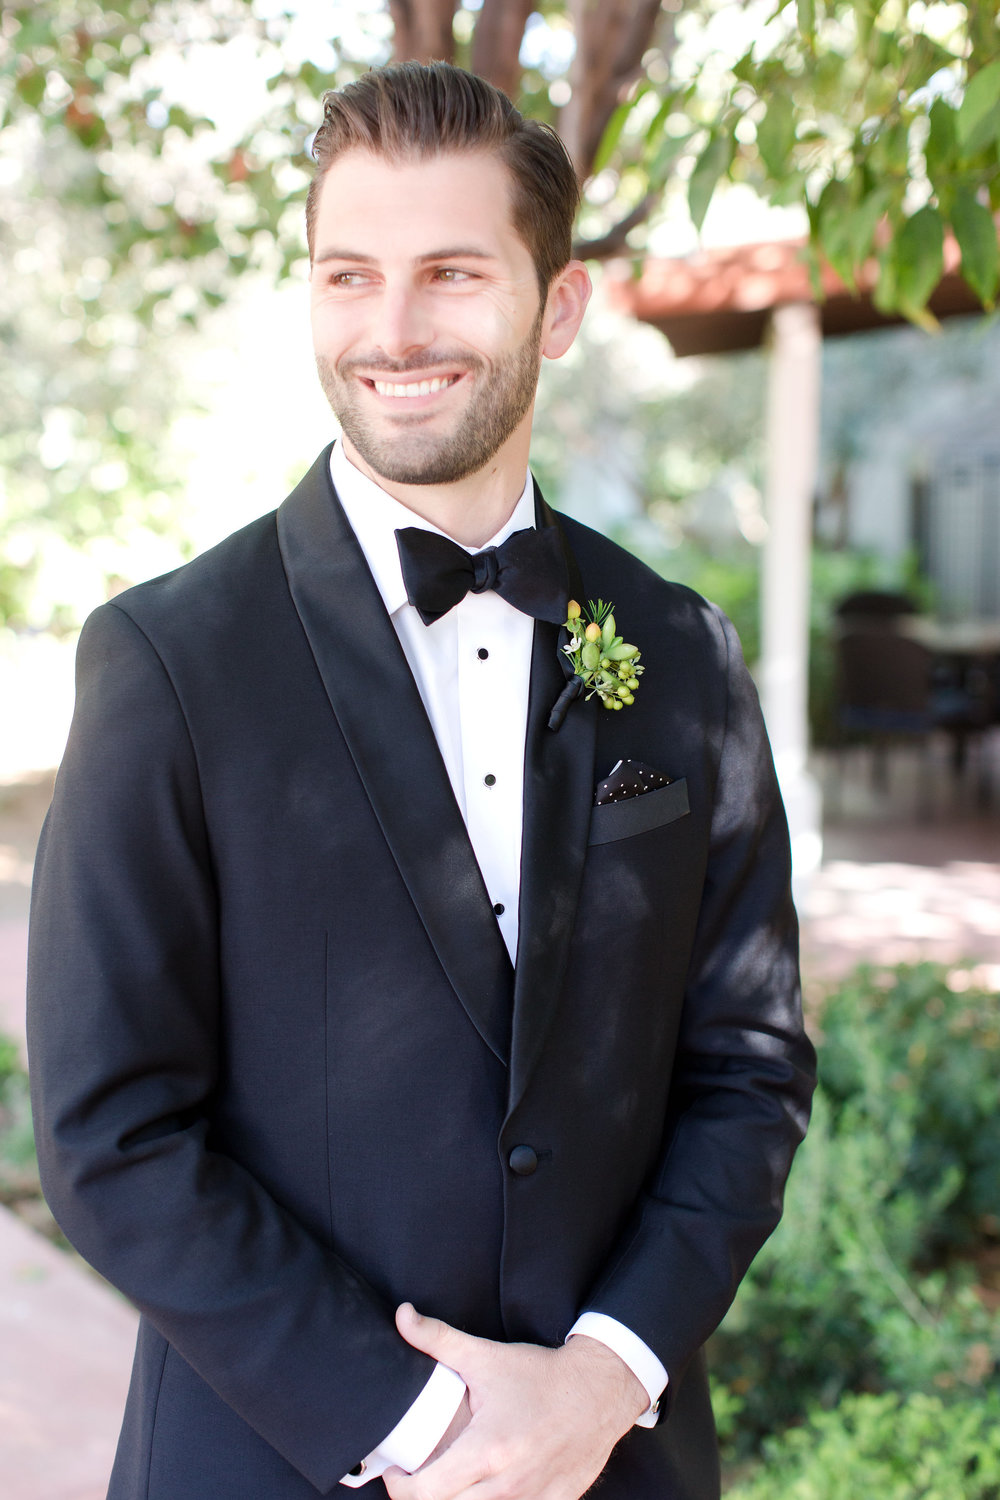 groom wedding details, peach and mint wedding, blush and green wedding, Arizona Phoenix Scottsdale wedding planner, first look, black tux, boutonniere, desert wedding